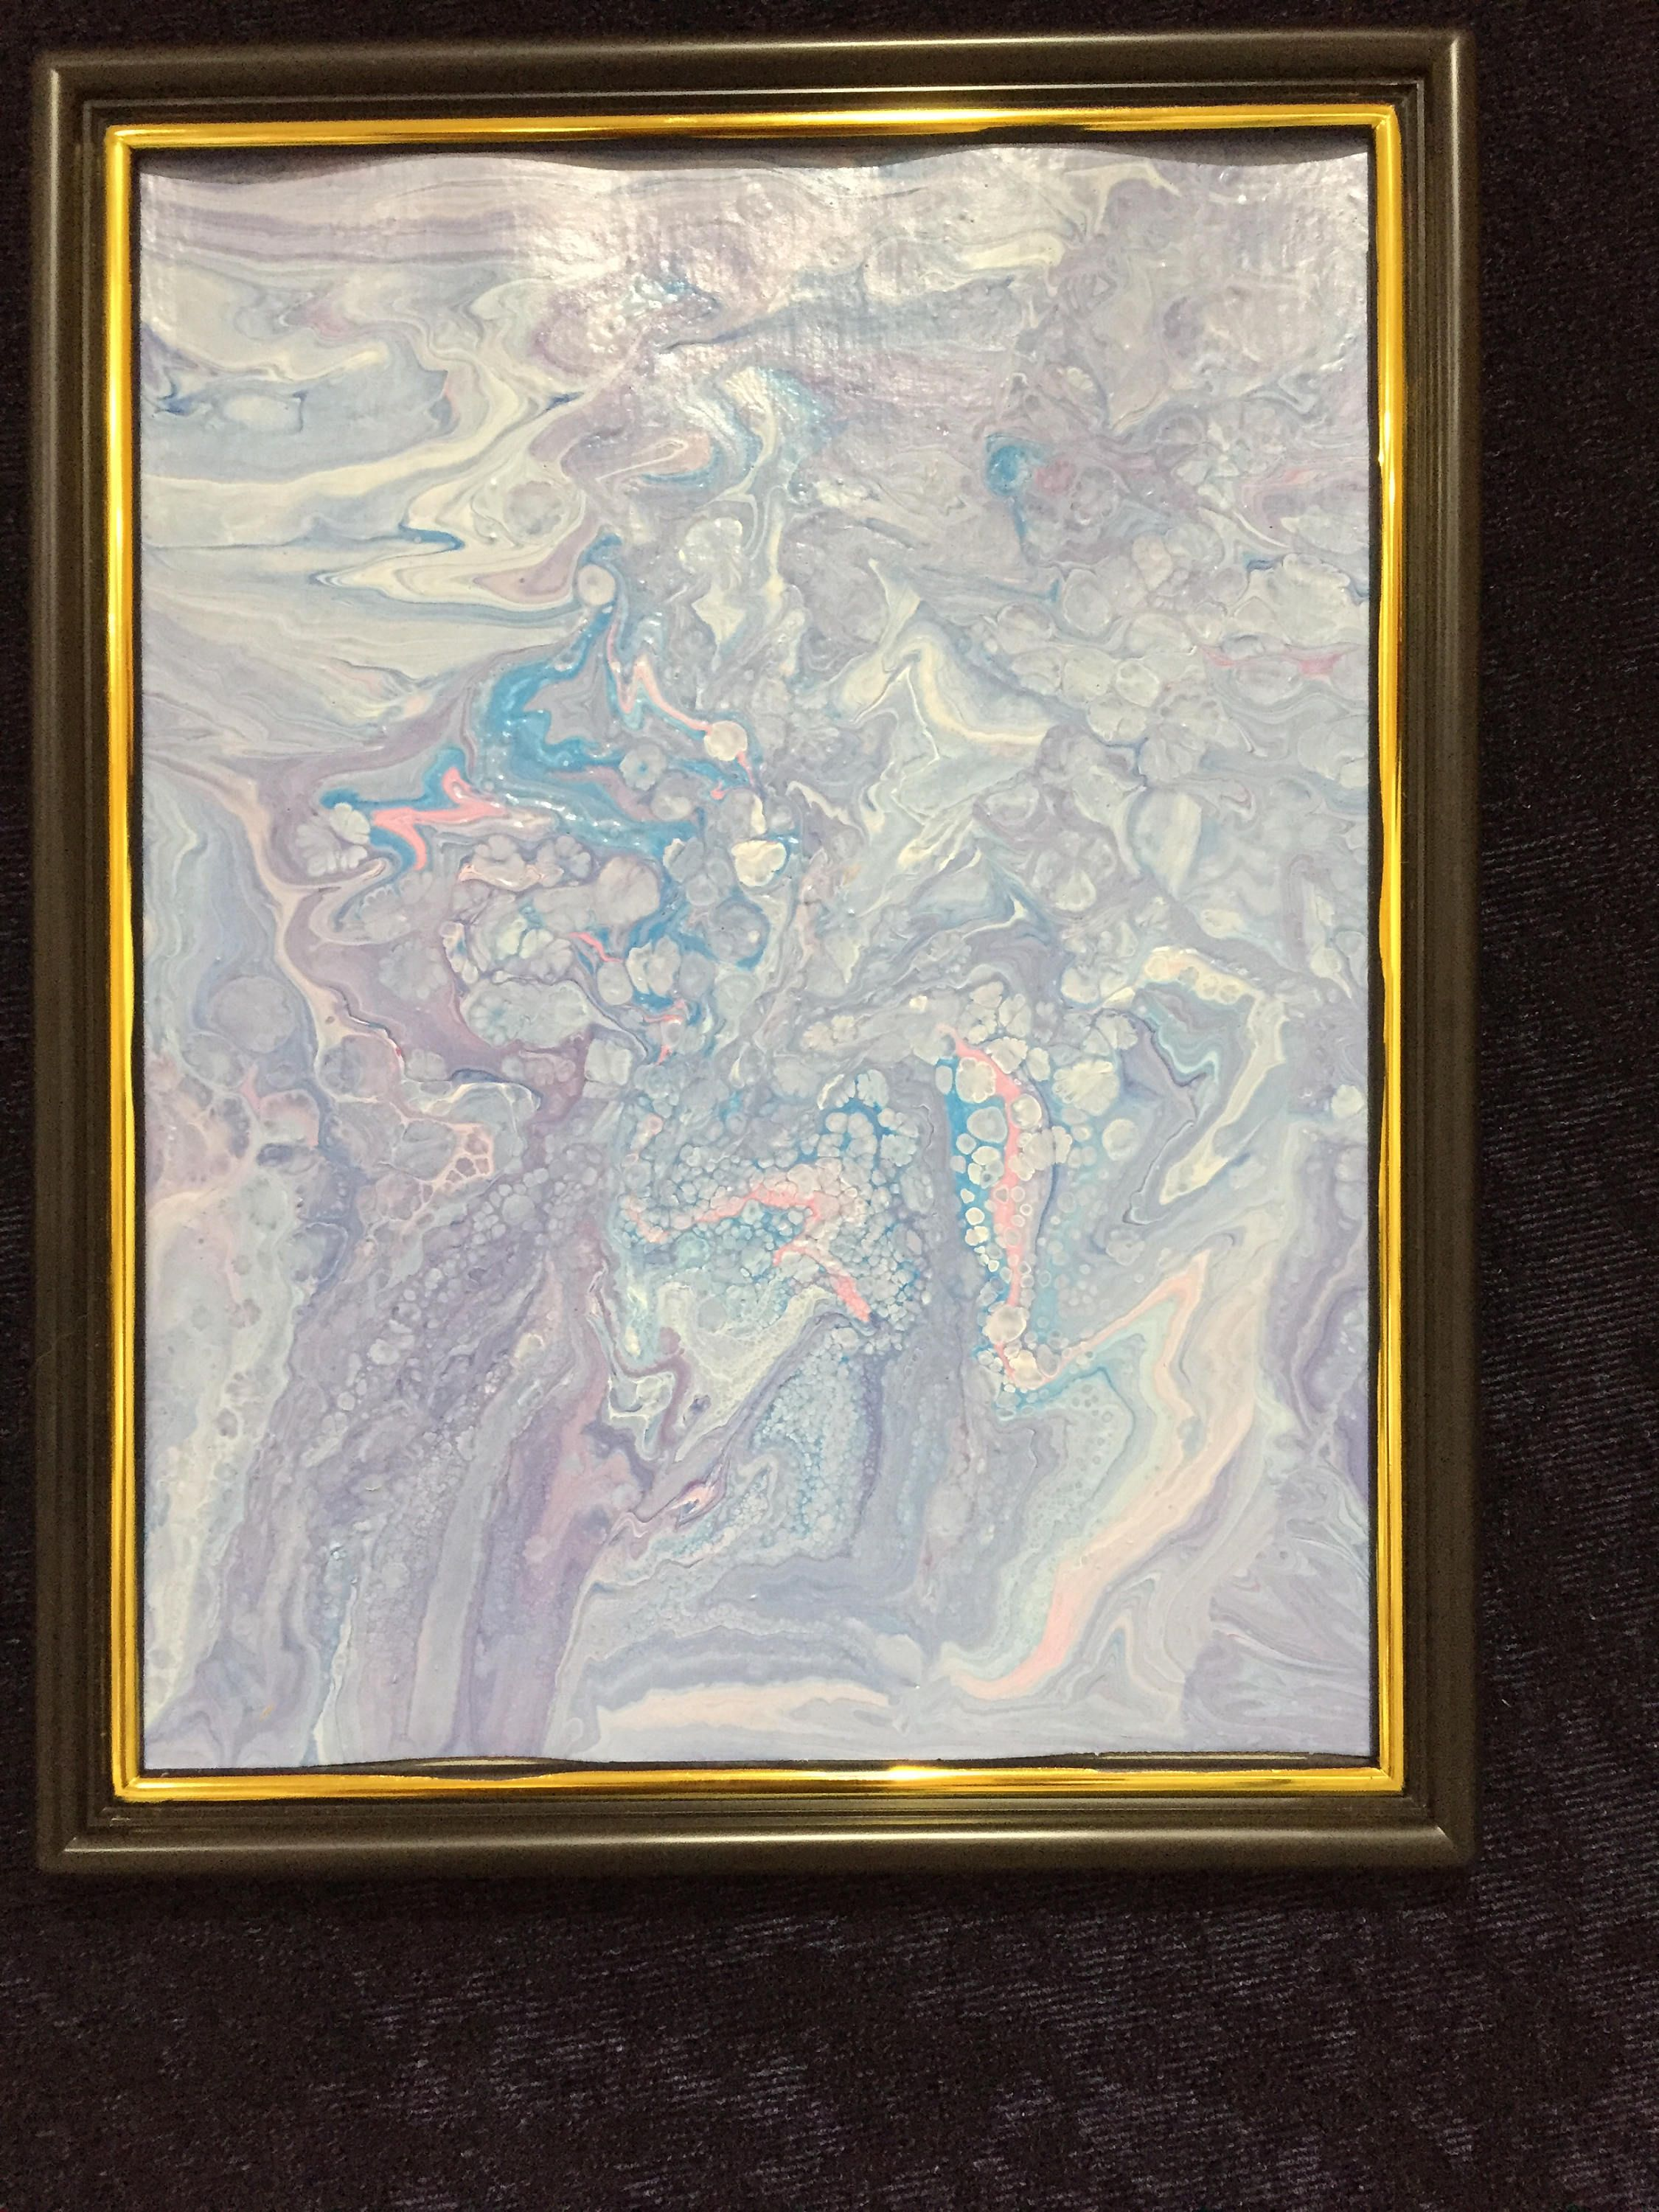 Abstract Original Poured Acrylic Painting - Framed 8.5 x 11 inches ...